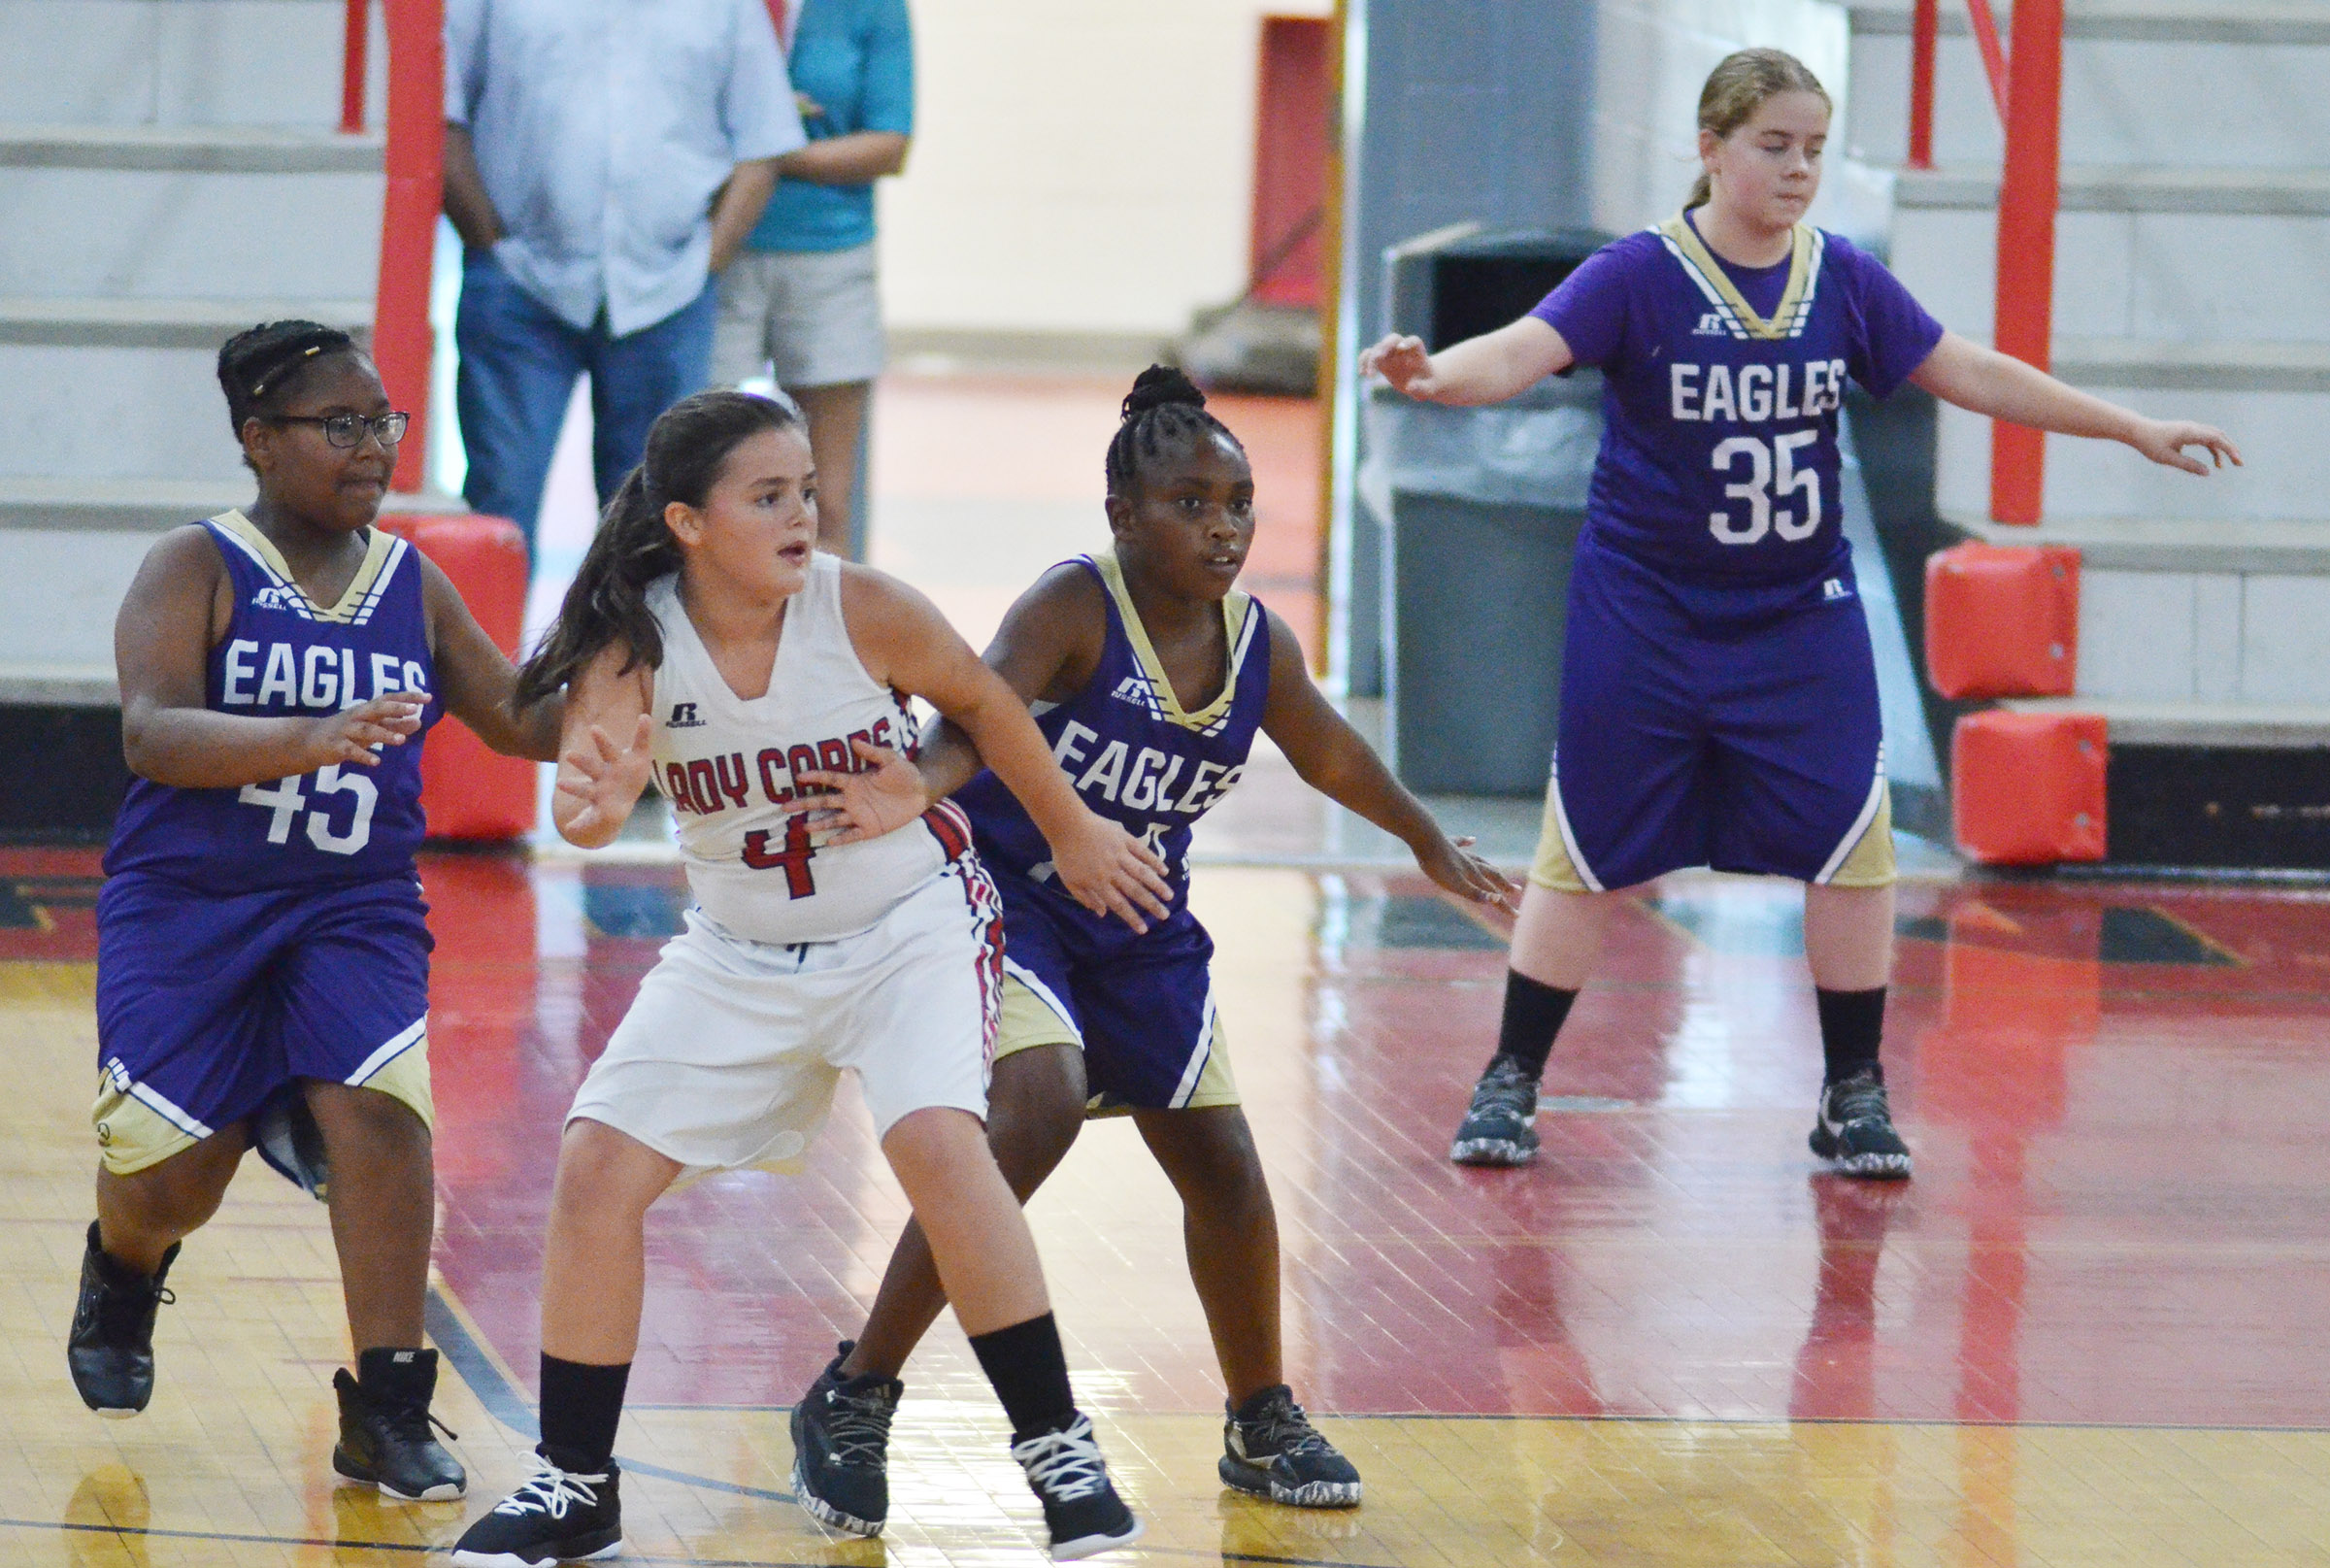 From left, CMS sixth-grader KyAshia Mitchell, Campbellsville Elementary School fifth-grader Ta'Zaria Owens and sixth-grader Layla Steen play defense.